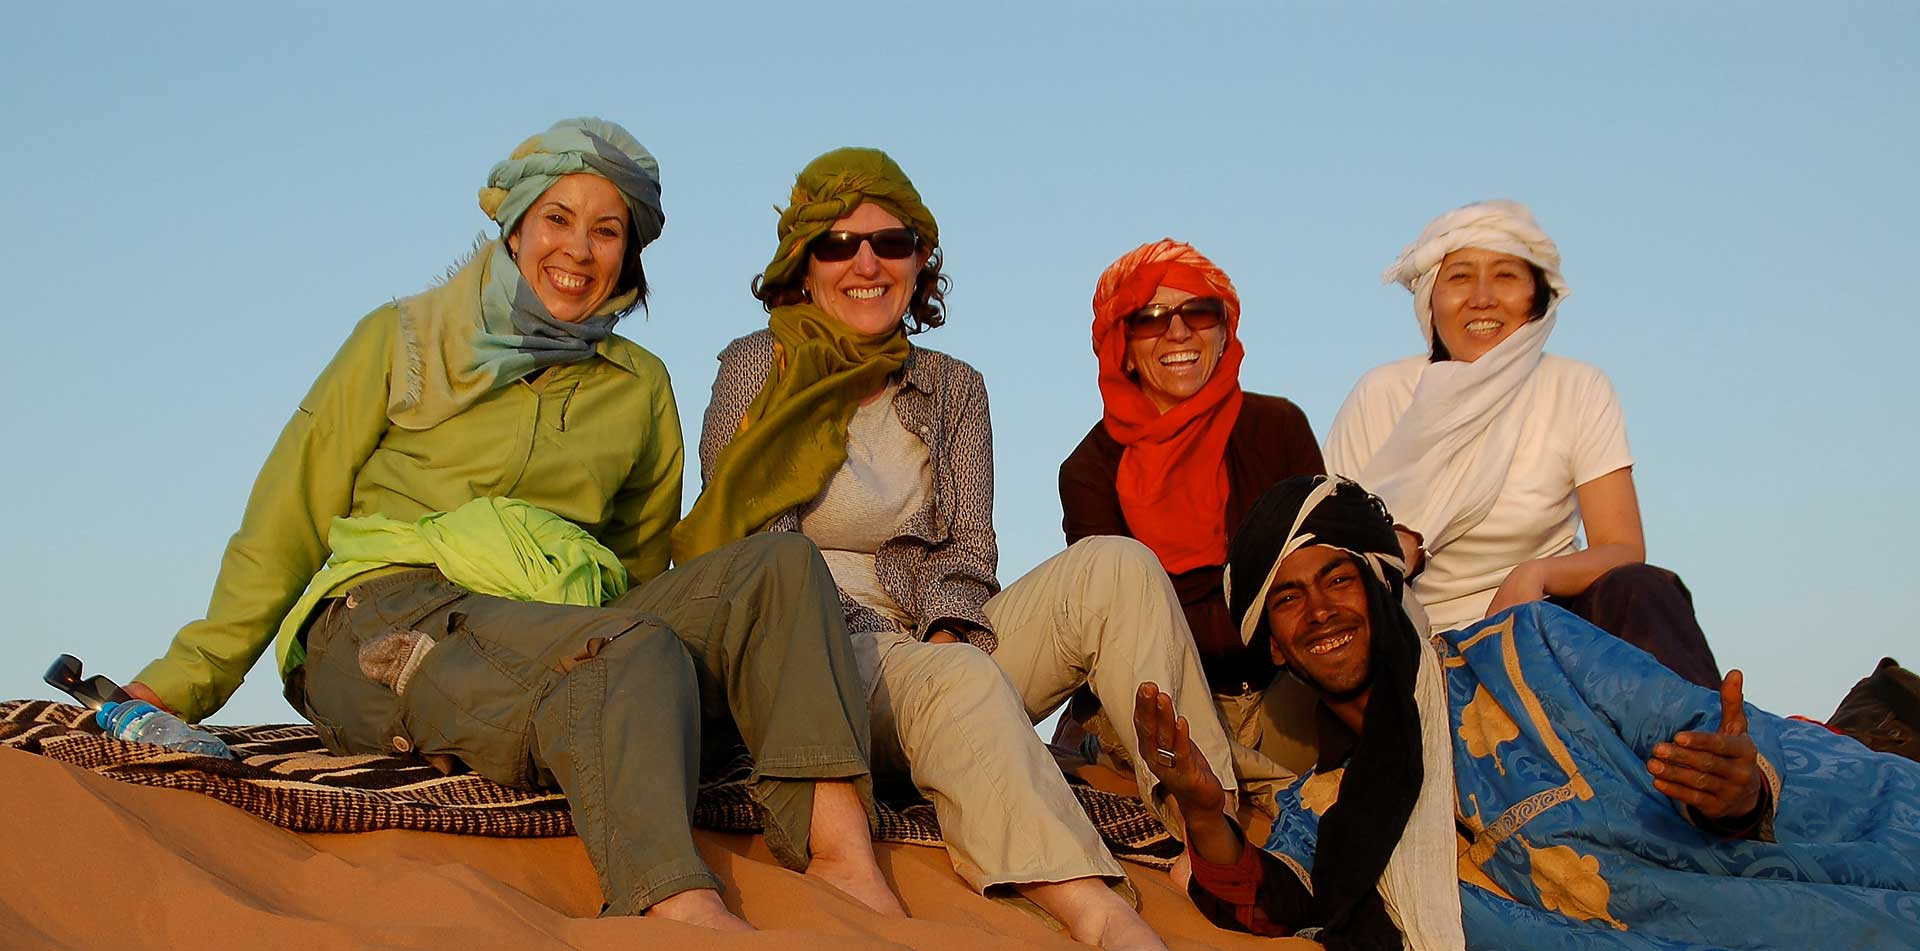 People Sitting on Sand Dune in Morocco